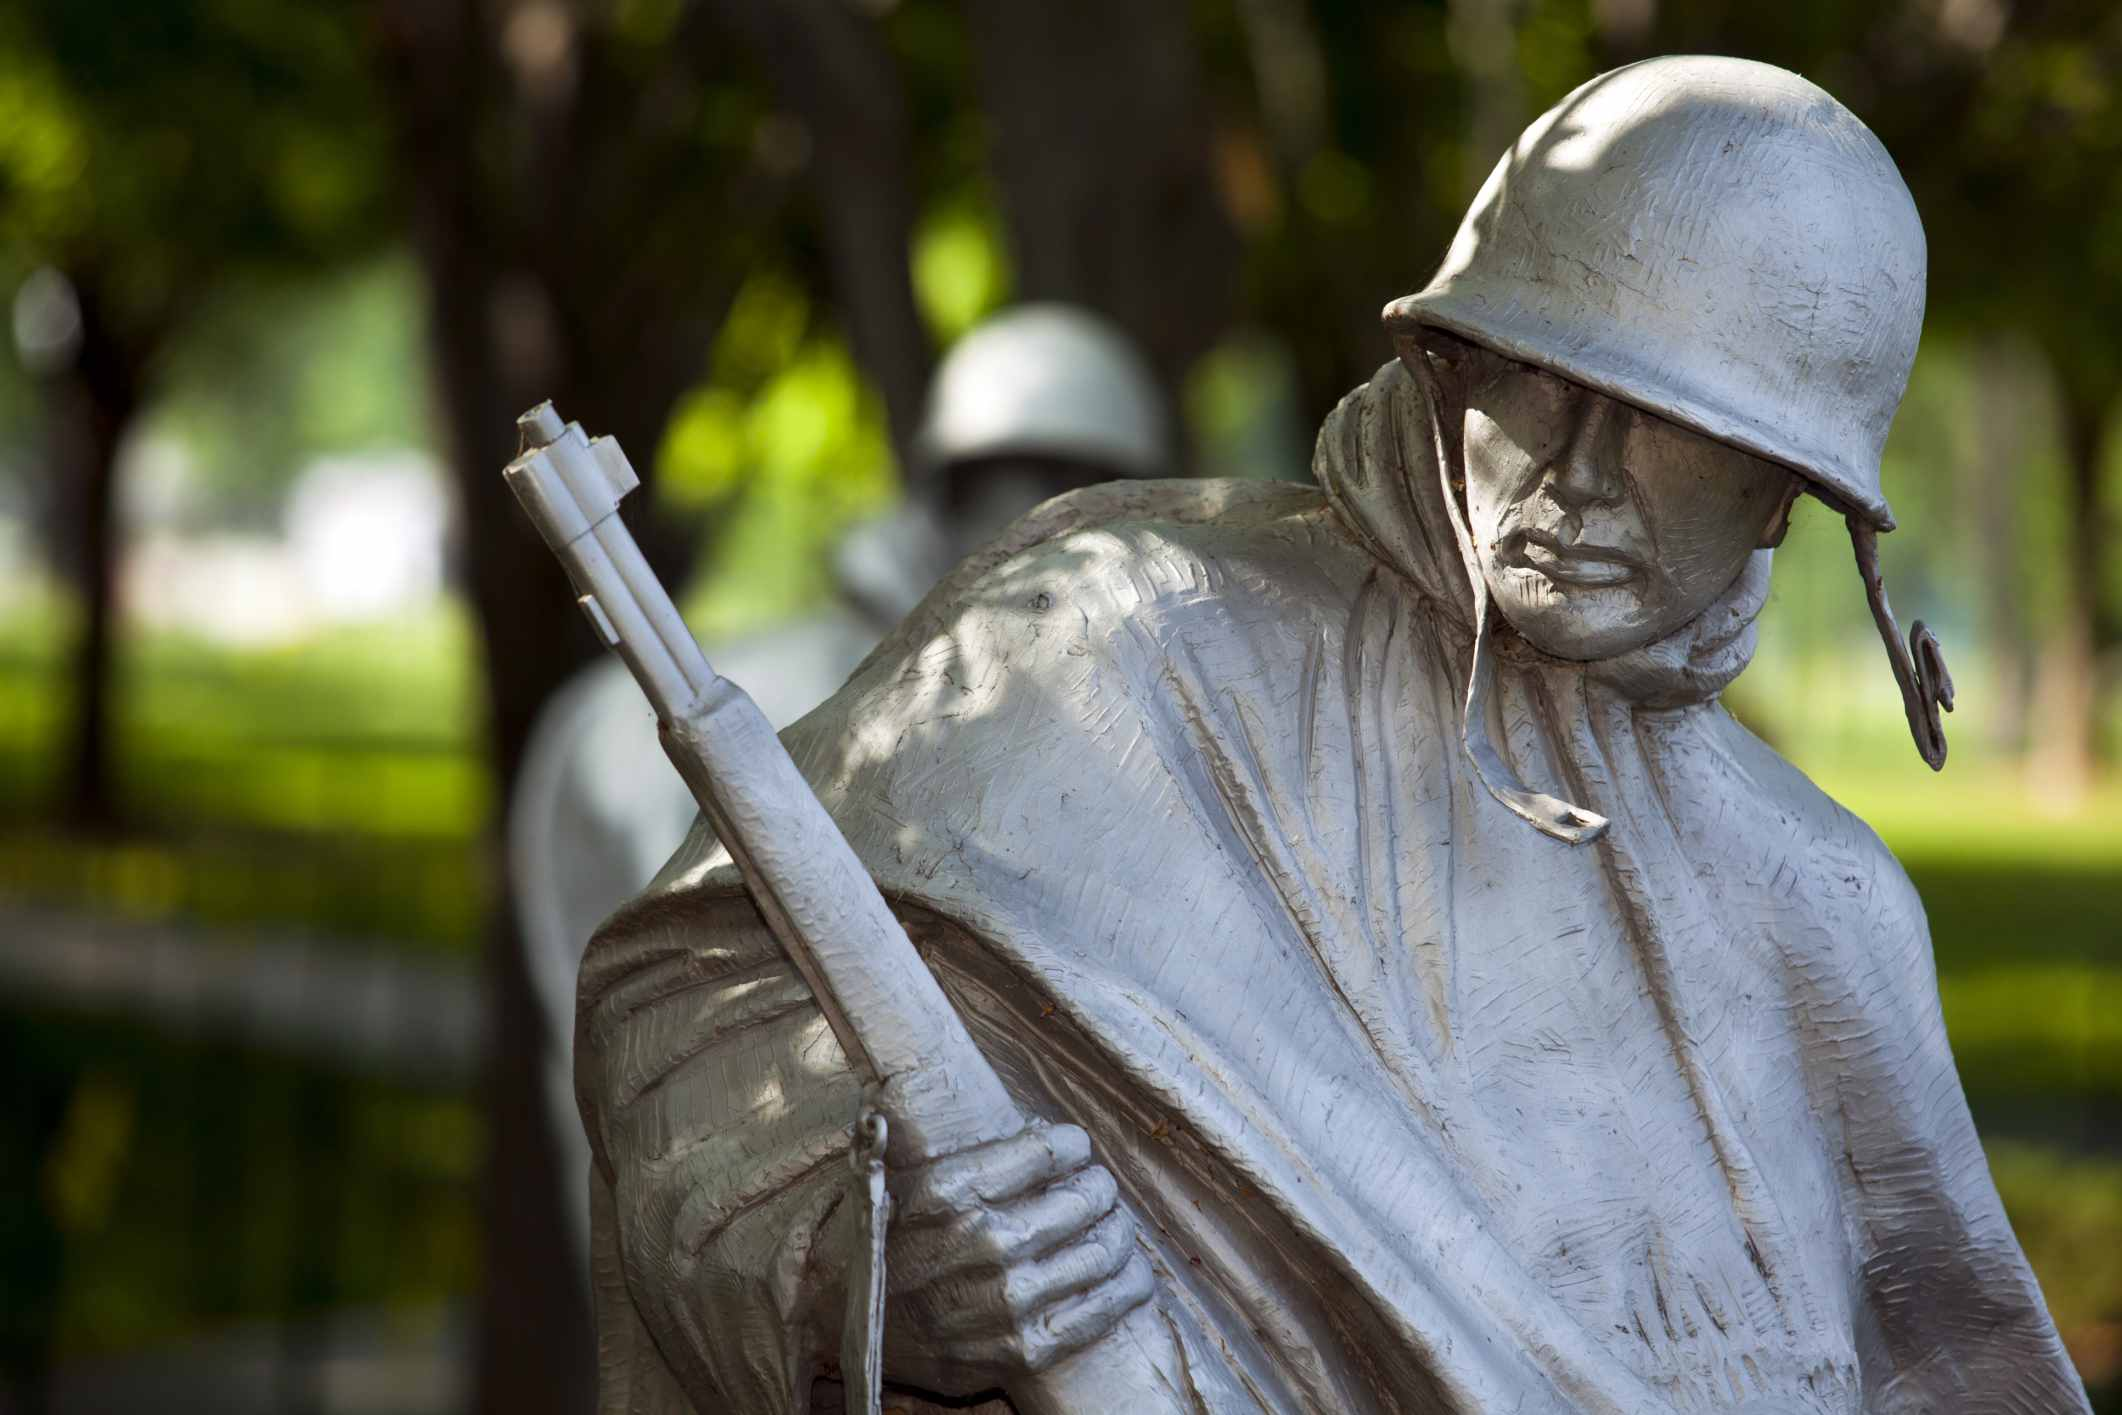 There are 19 statues used in the Korean War Memorial, Washington, DC